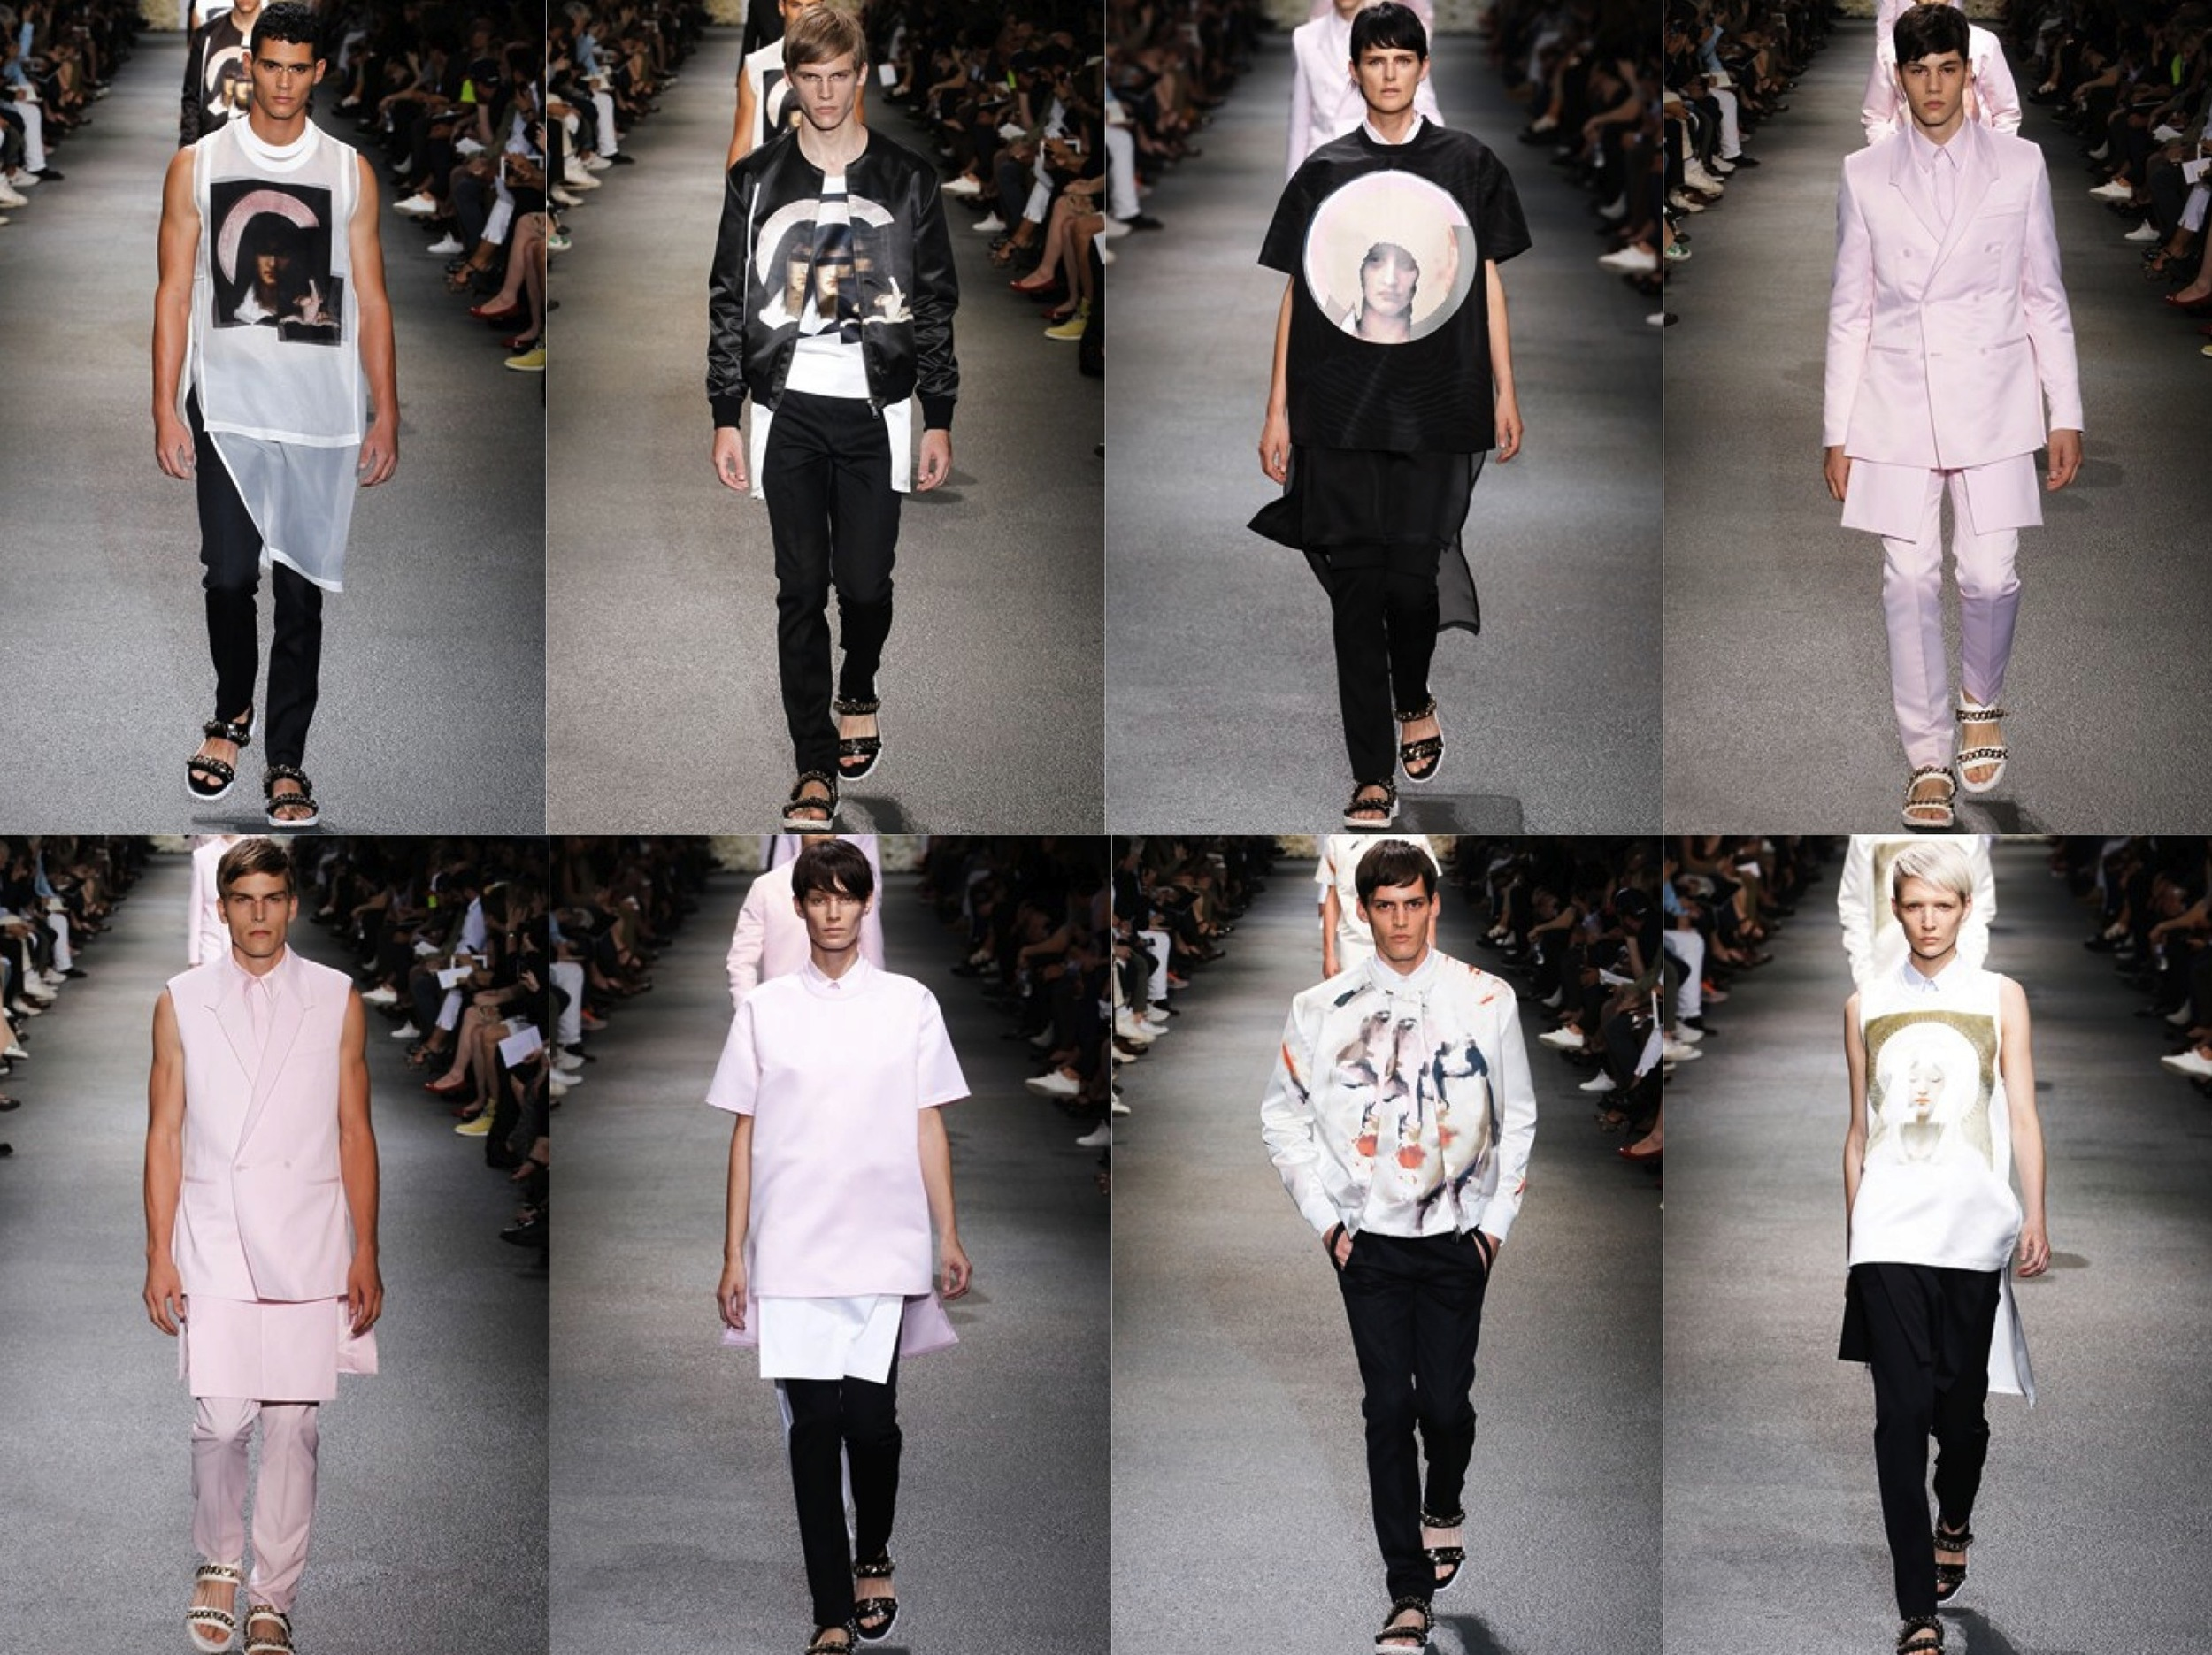 Givenchy SS2013 Menswear Collection